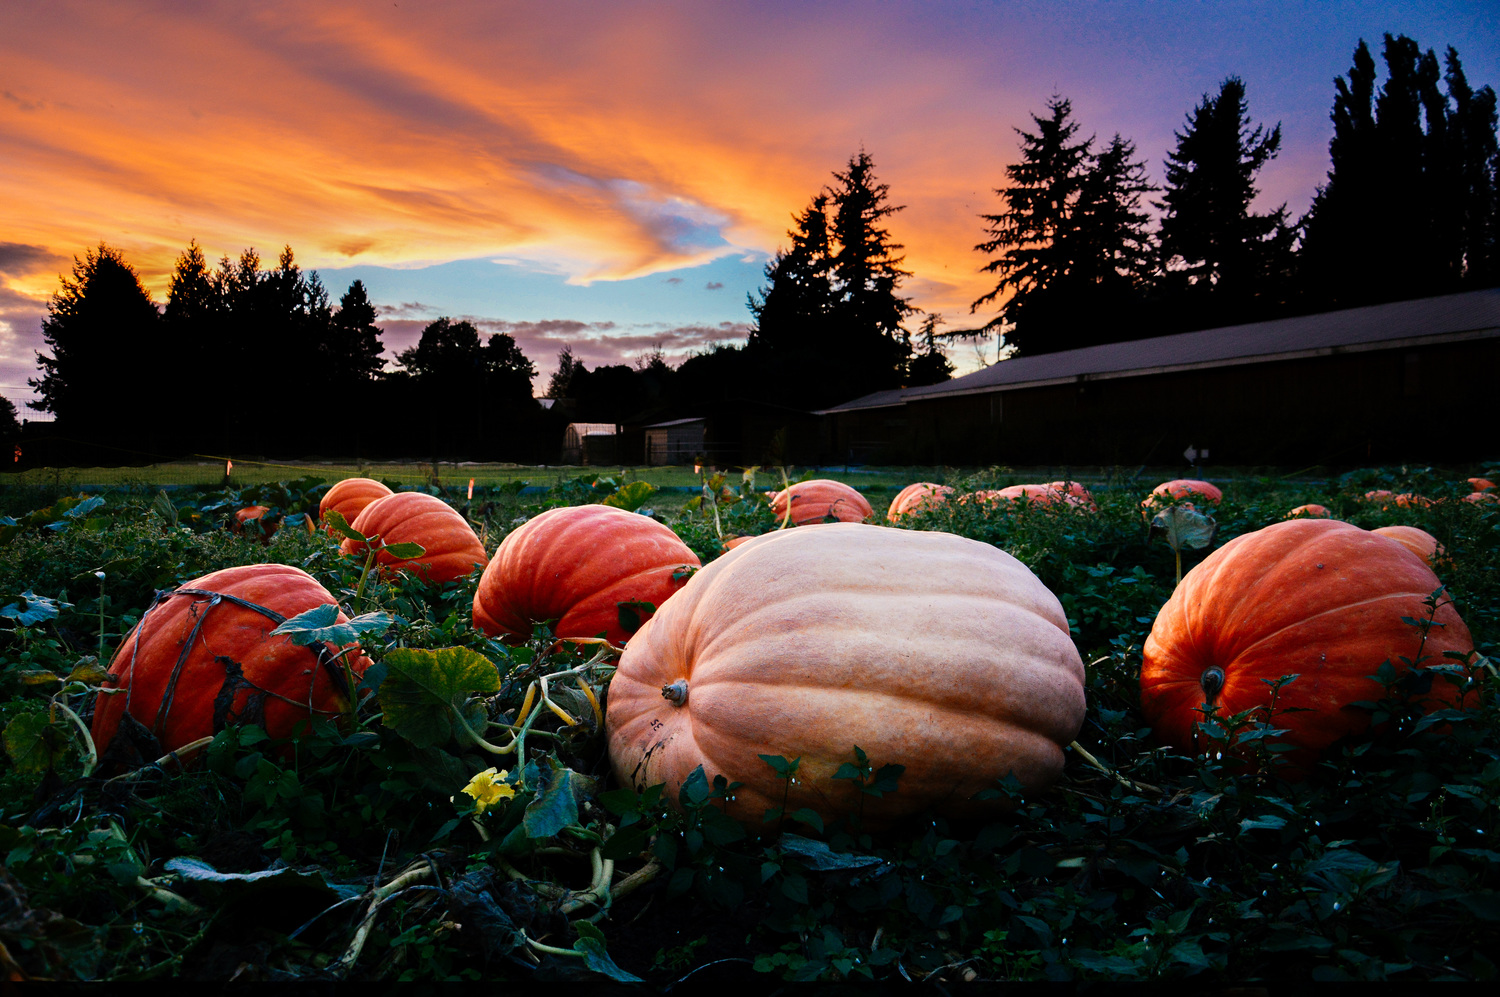 Sunset over the pumpkin patch at Willow View Farms (Kelsey Siemens)